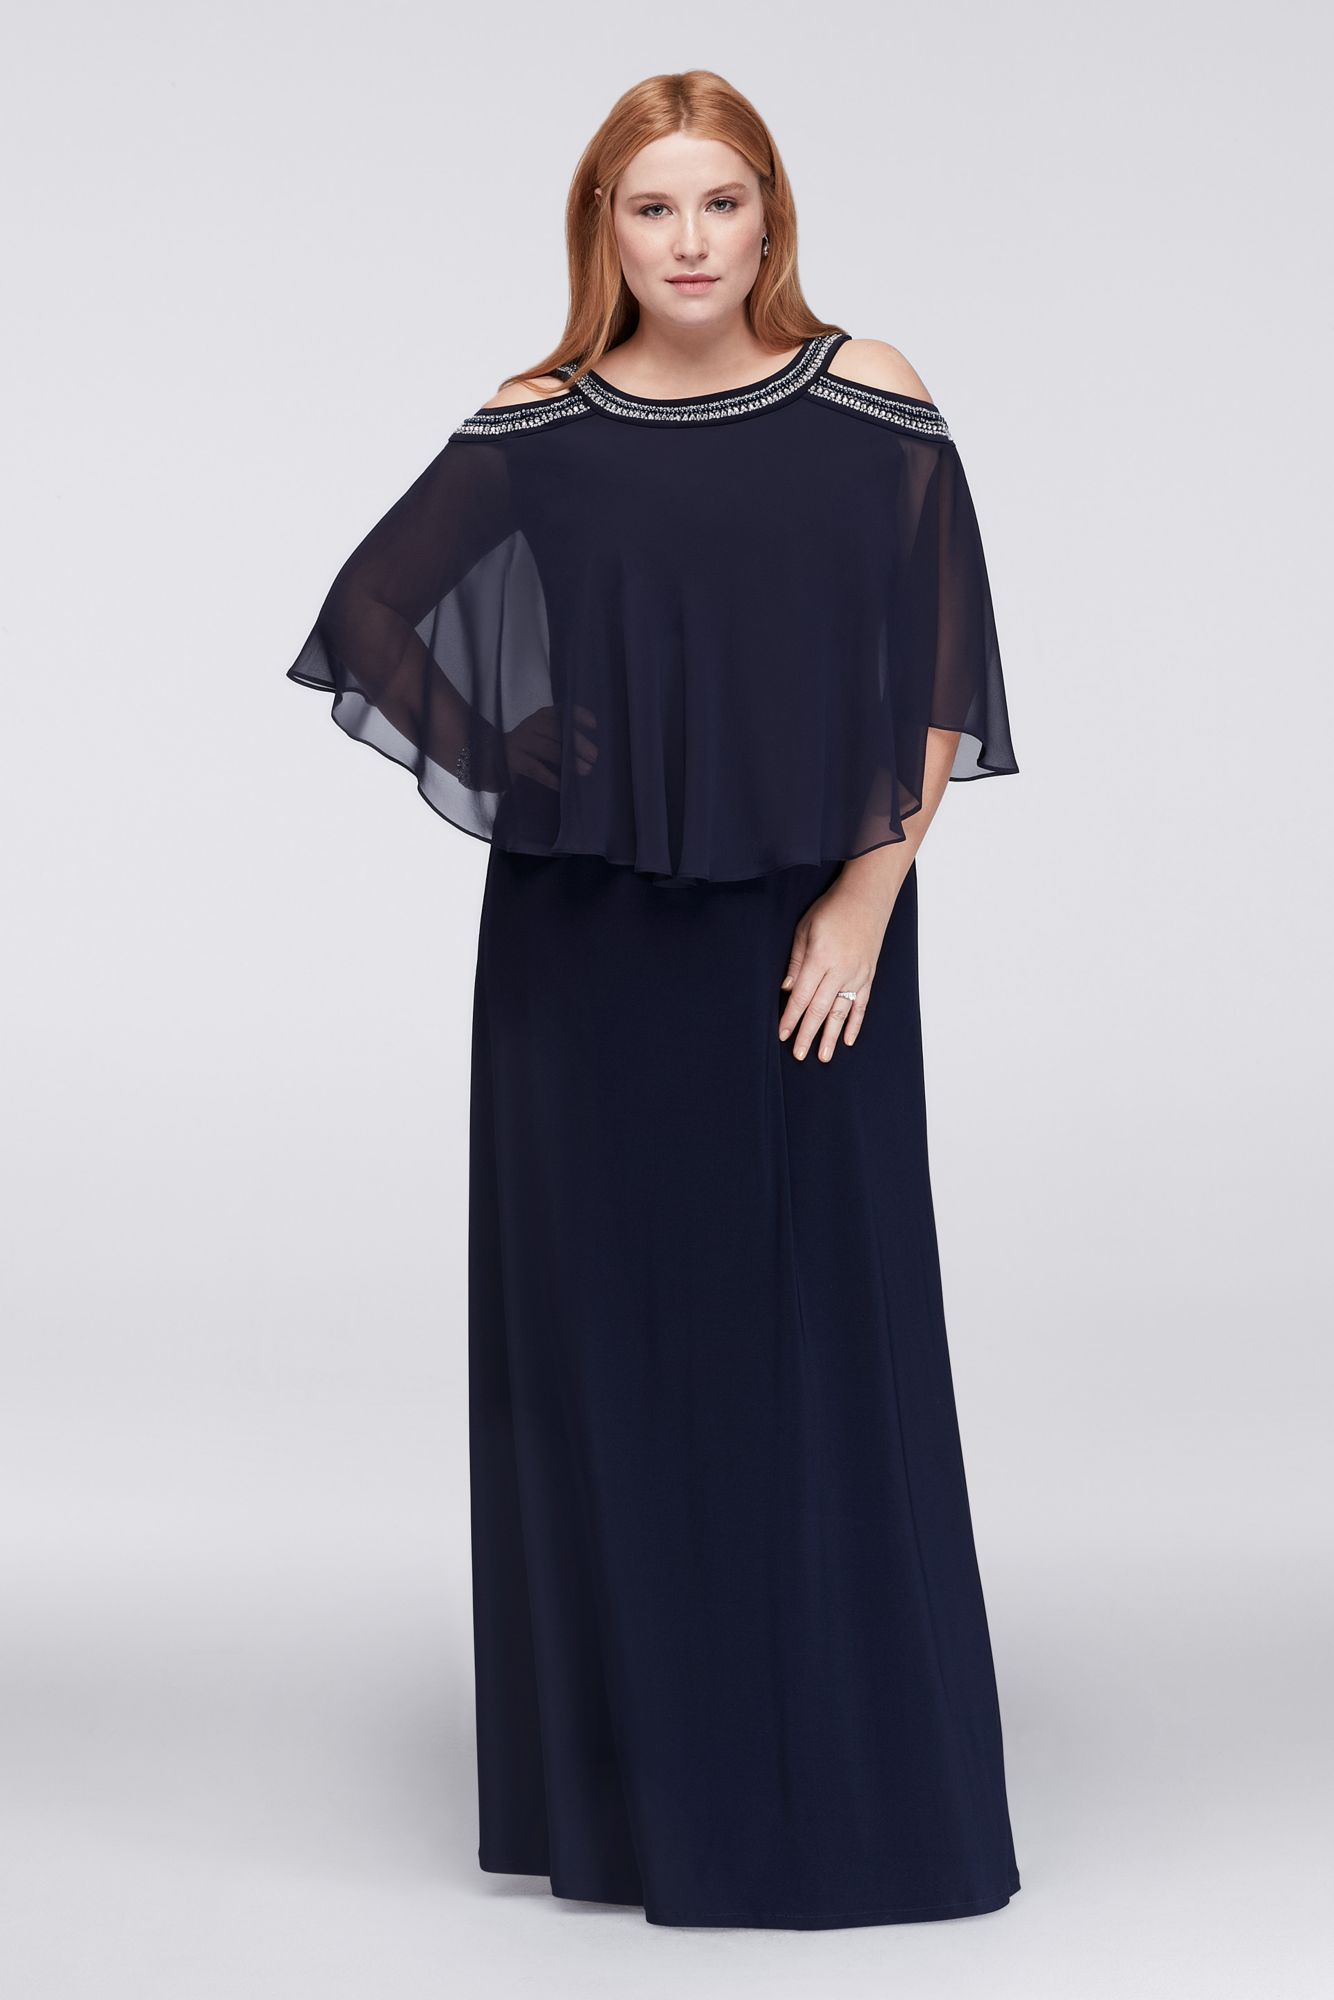 a59c83cf6f7 Cold Shoulder Capelet Plus Size Dress with Beading David s ...